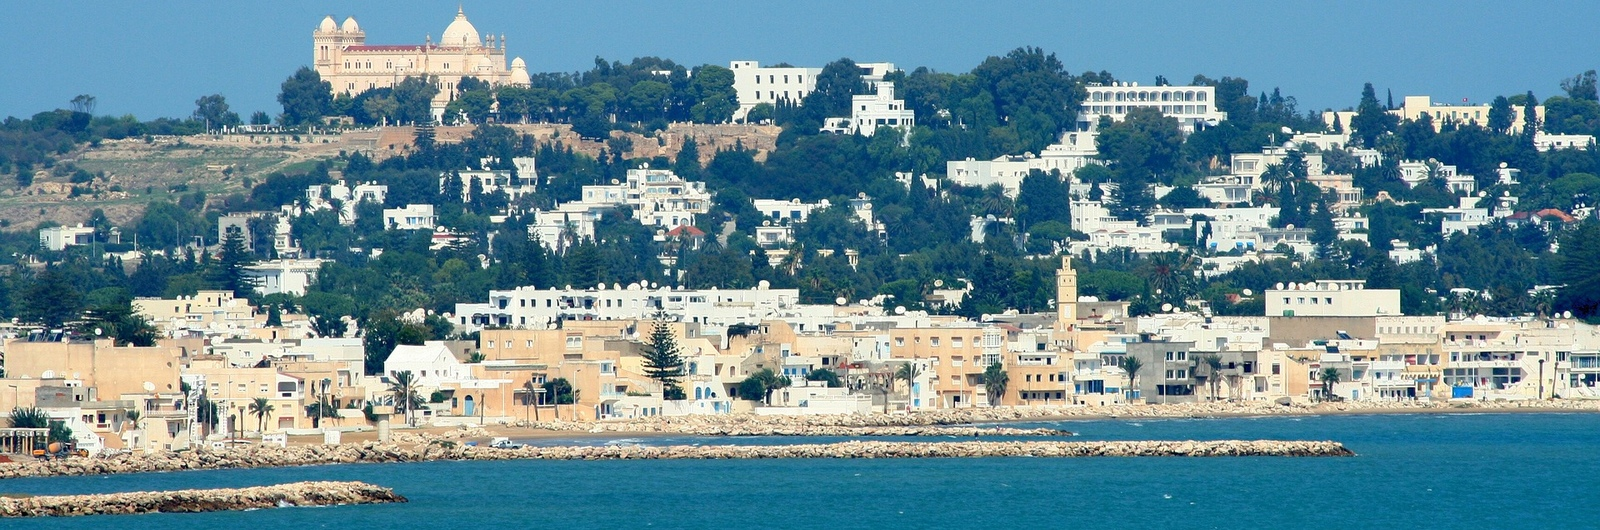 tunis city header